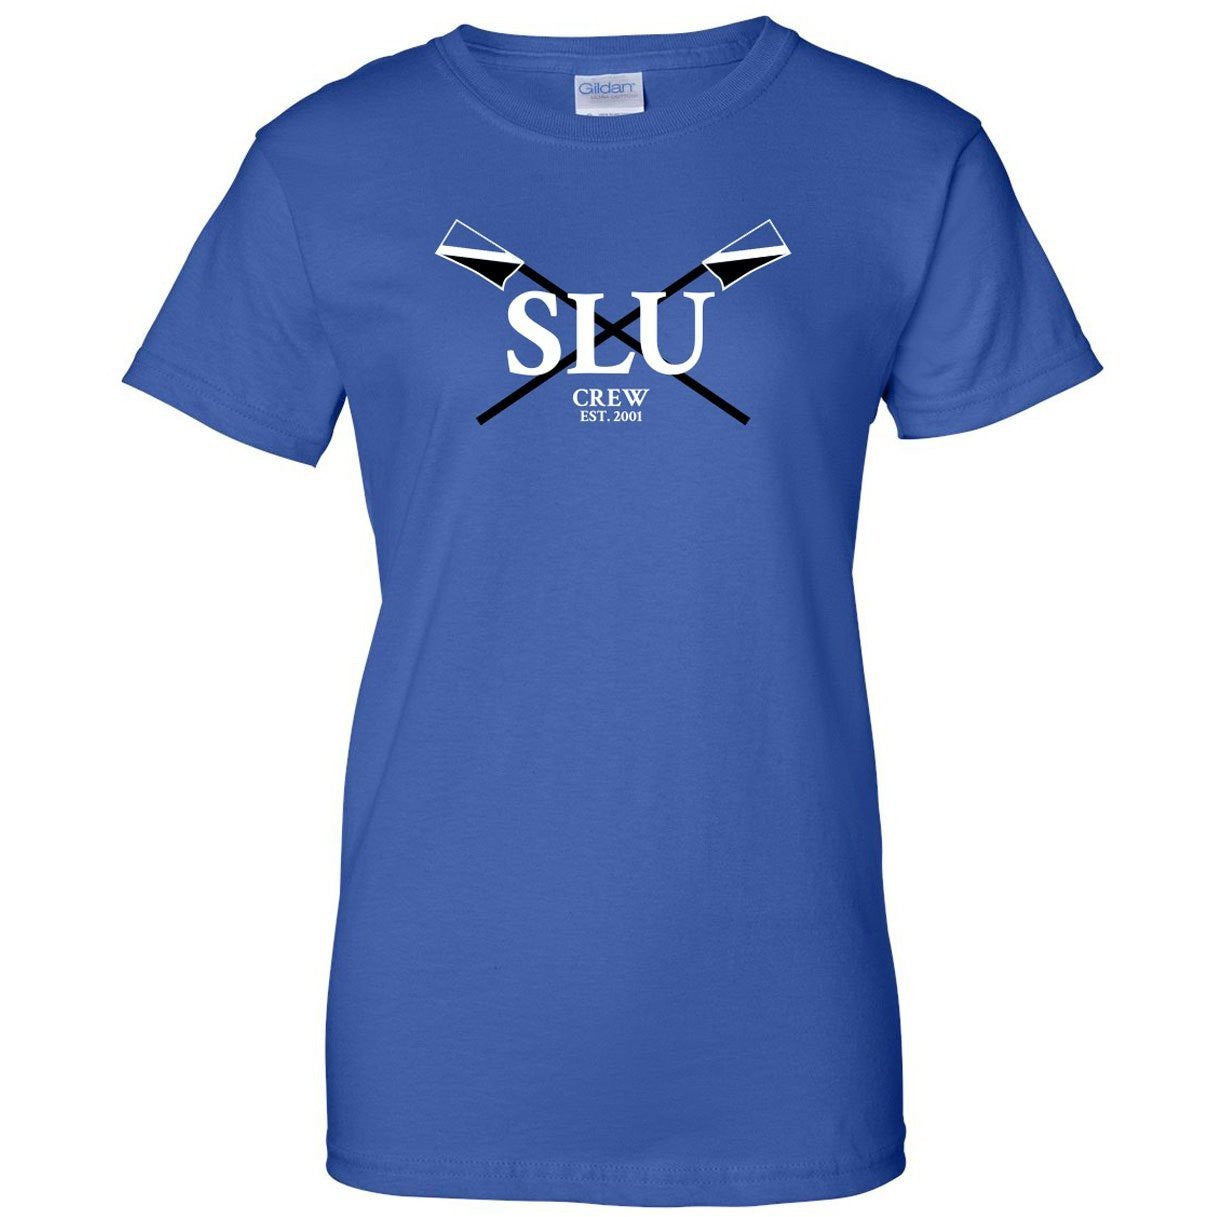 100% Cotton SLU Crew Women's Team Spirit T-Shirt